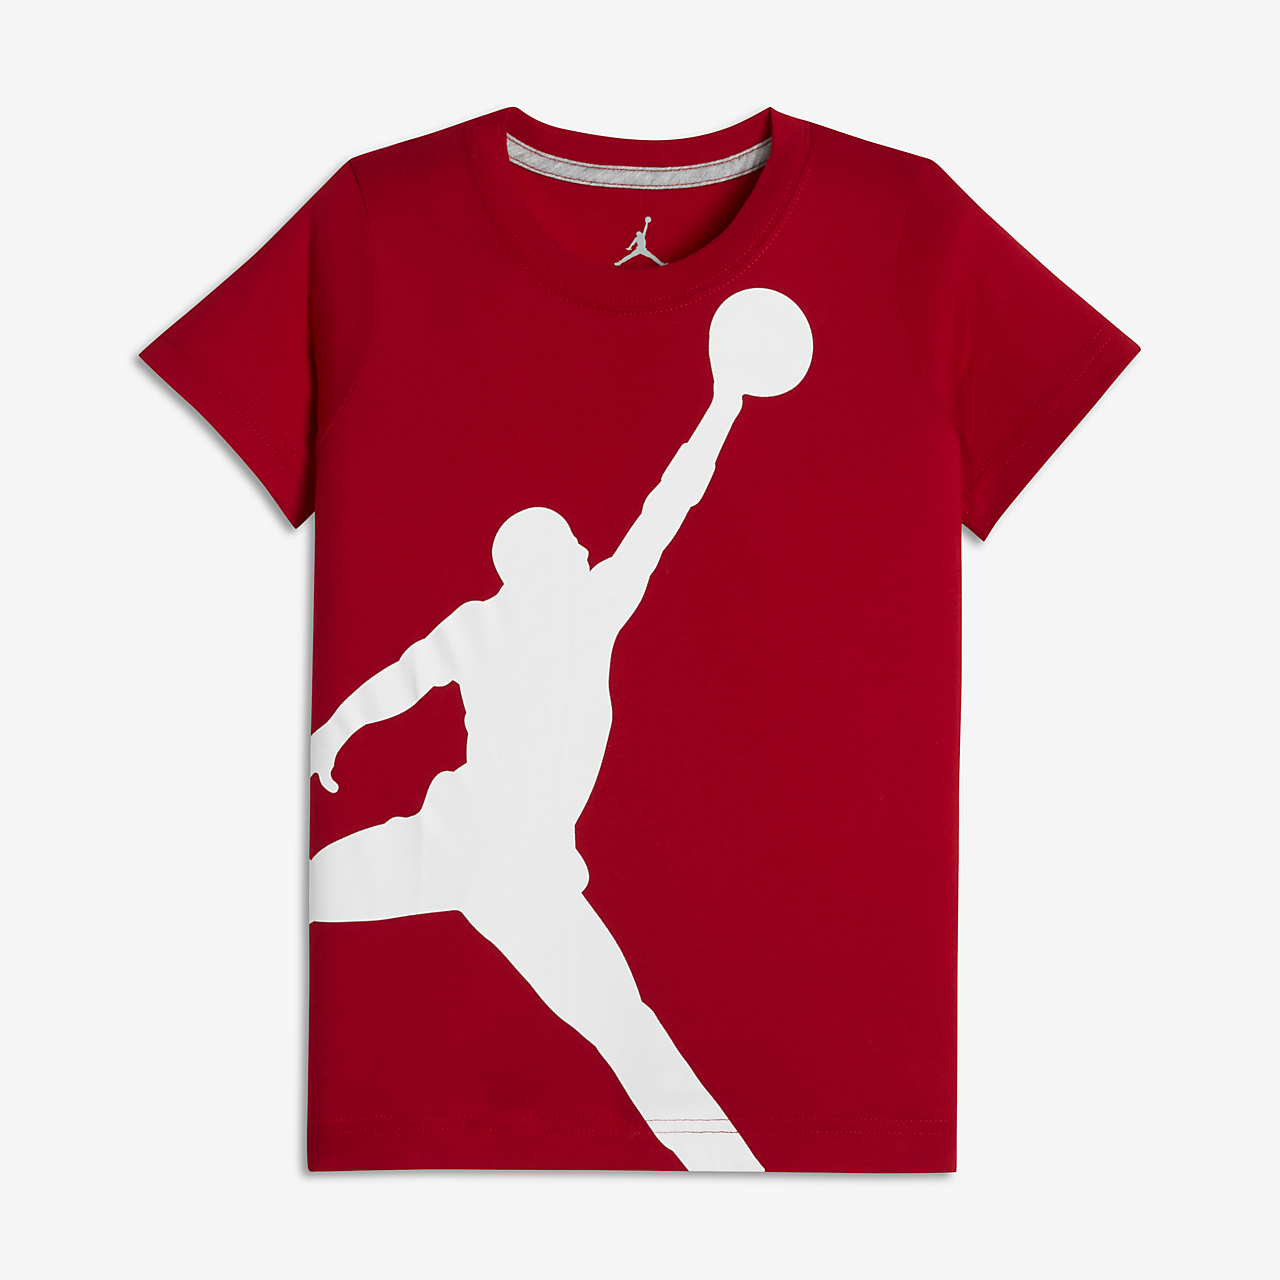 9c6eab4ae303fb Jordan Jumbo Jumpman Younger Kids  (Boys ) T-Shirt. Nike.com BE